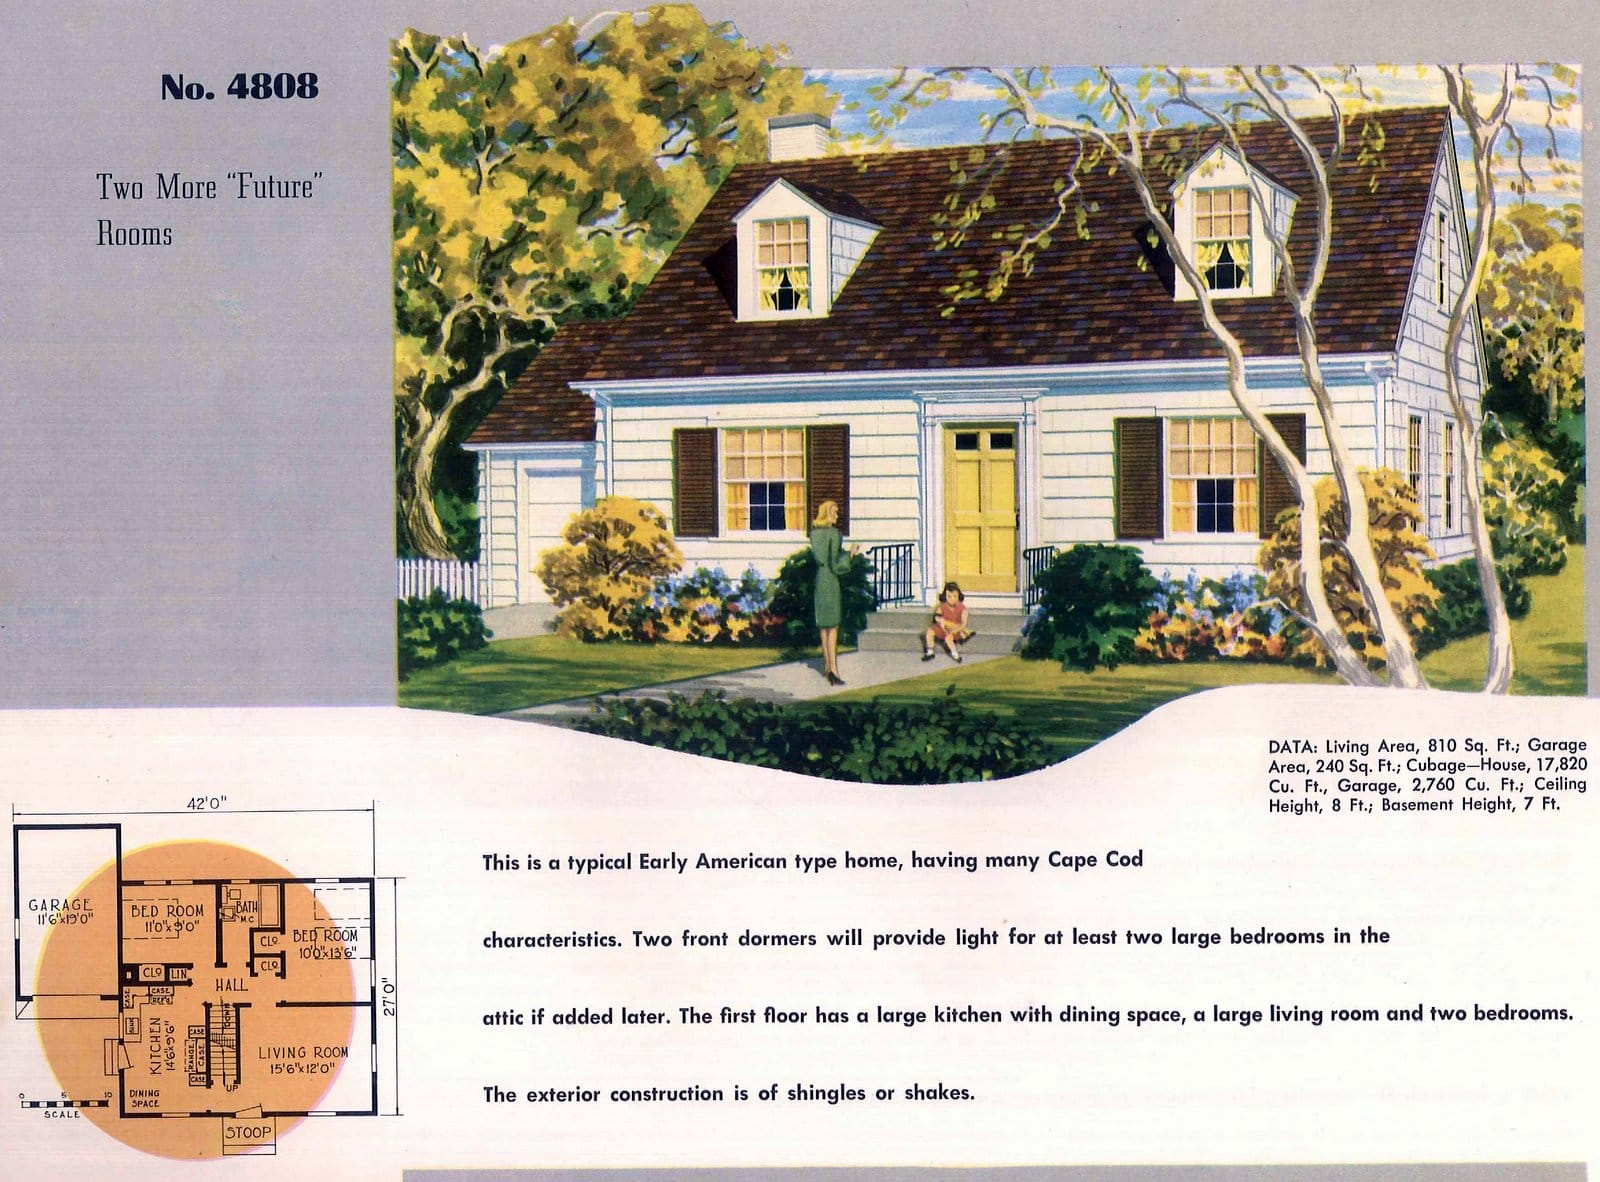 Vintage 50s small starter home designs from 1950 (6)